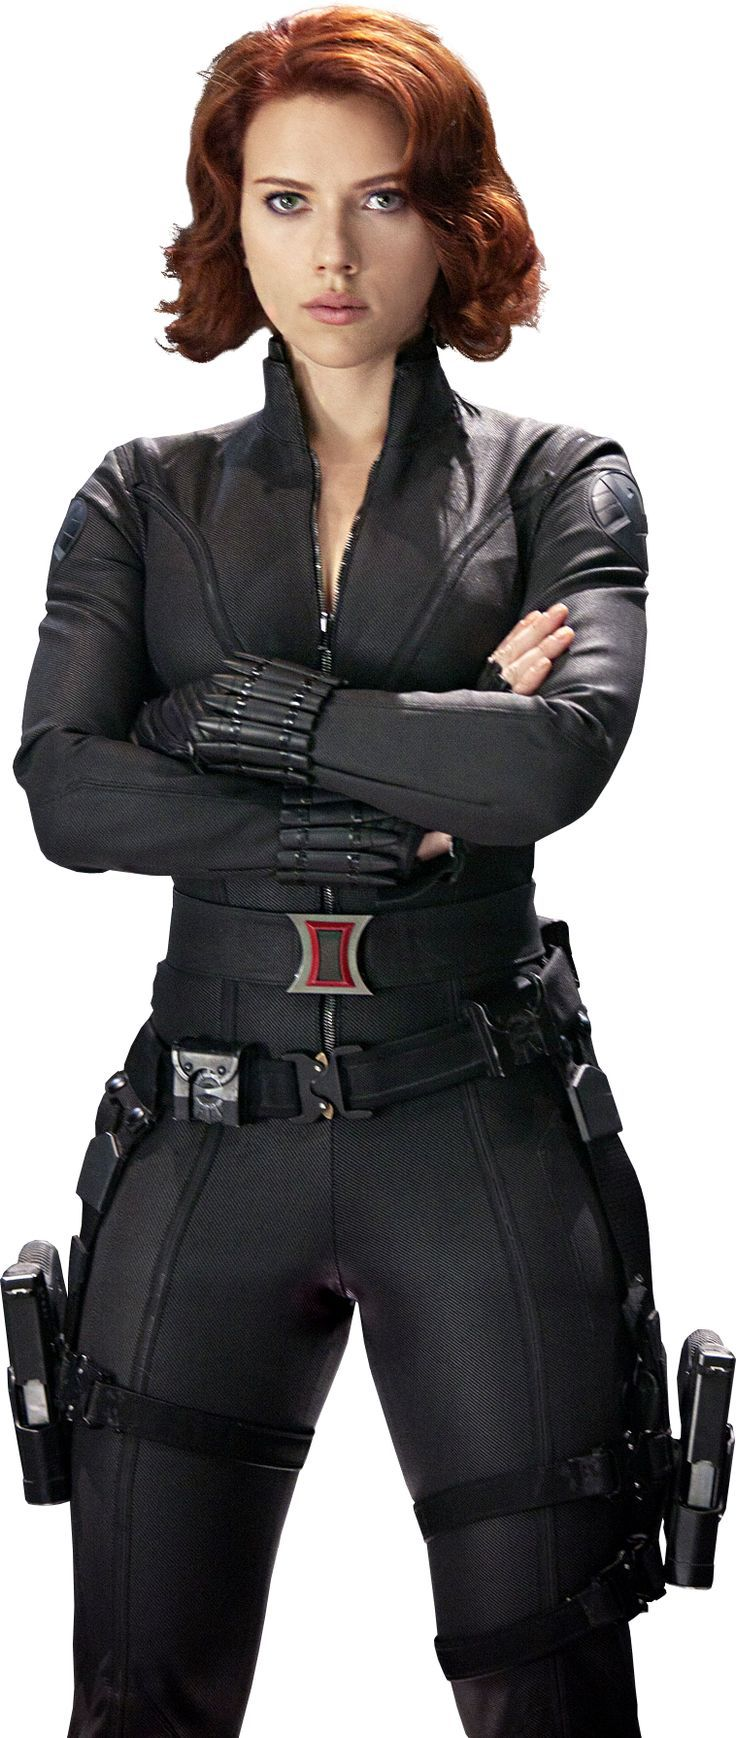 black widow costume diy - Google Search | Black Widow ...